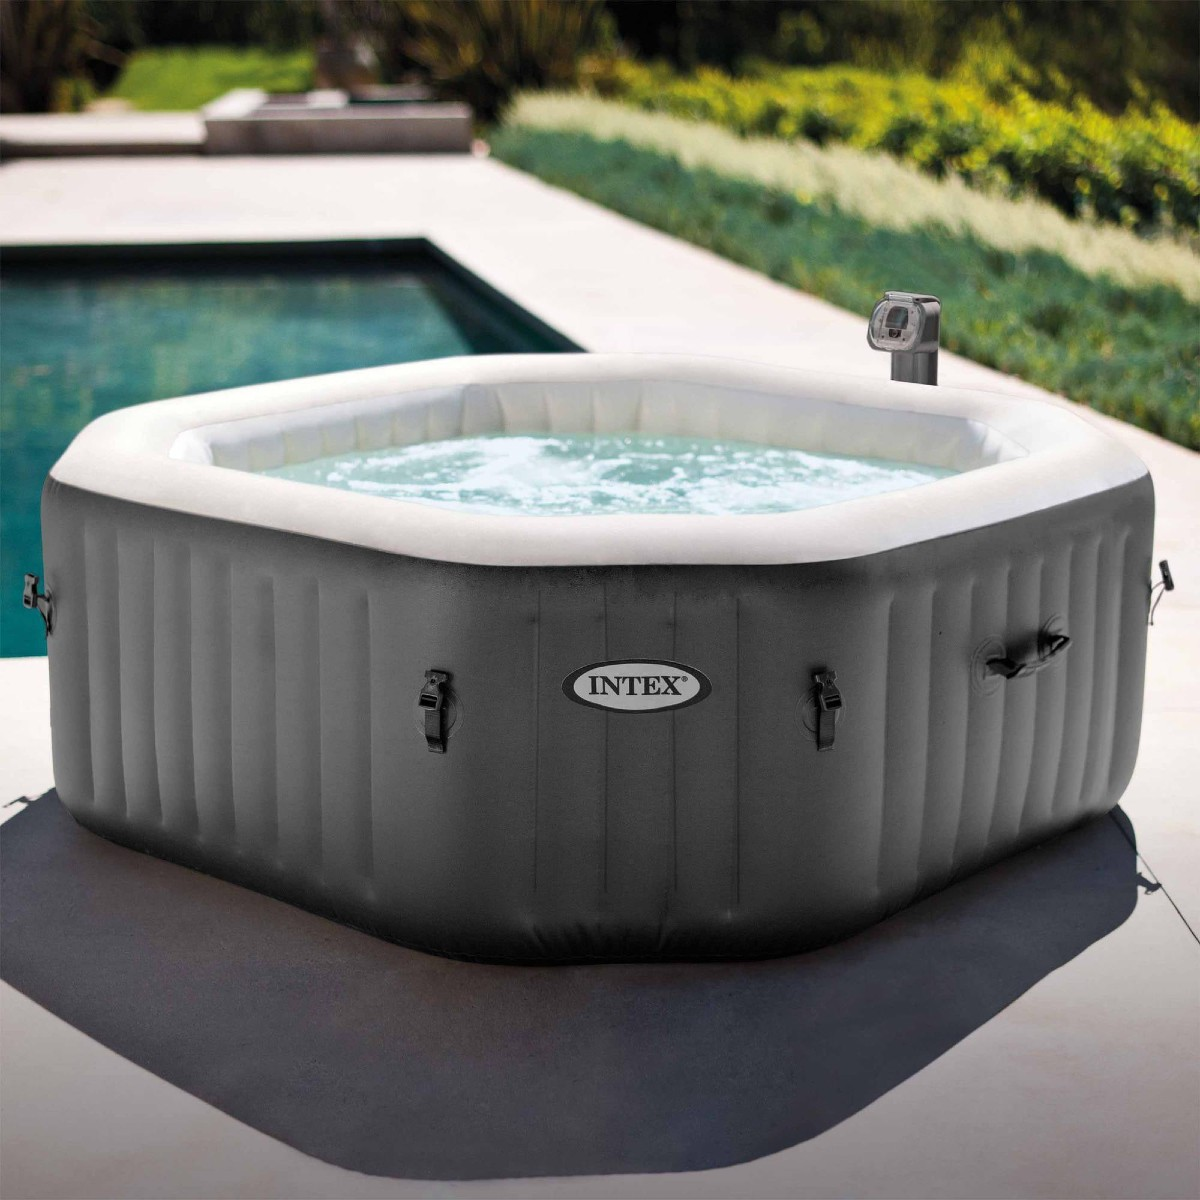 What To Put Under An Inflatable Hot Tub 3 Ideas For Longevity Own The Pool